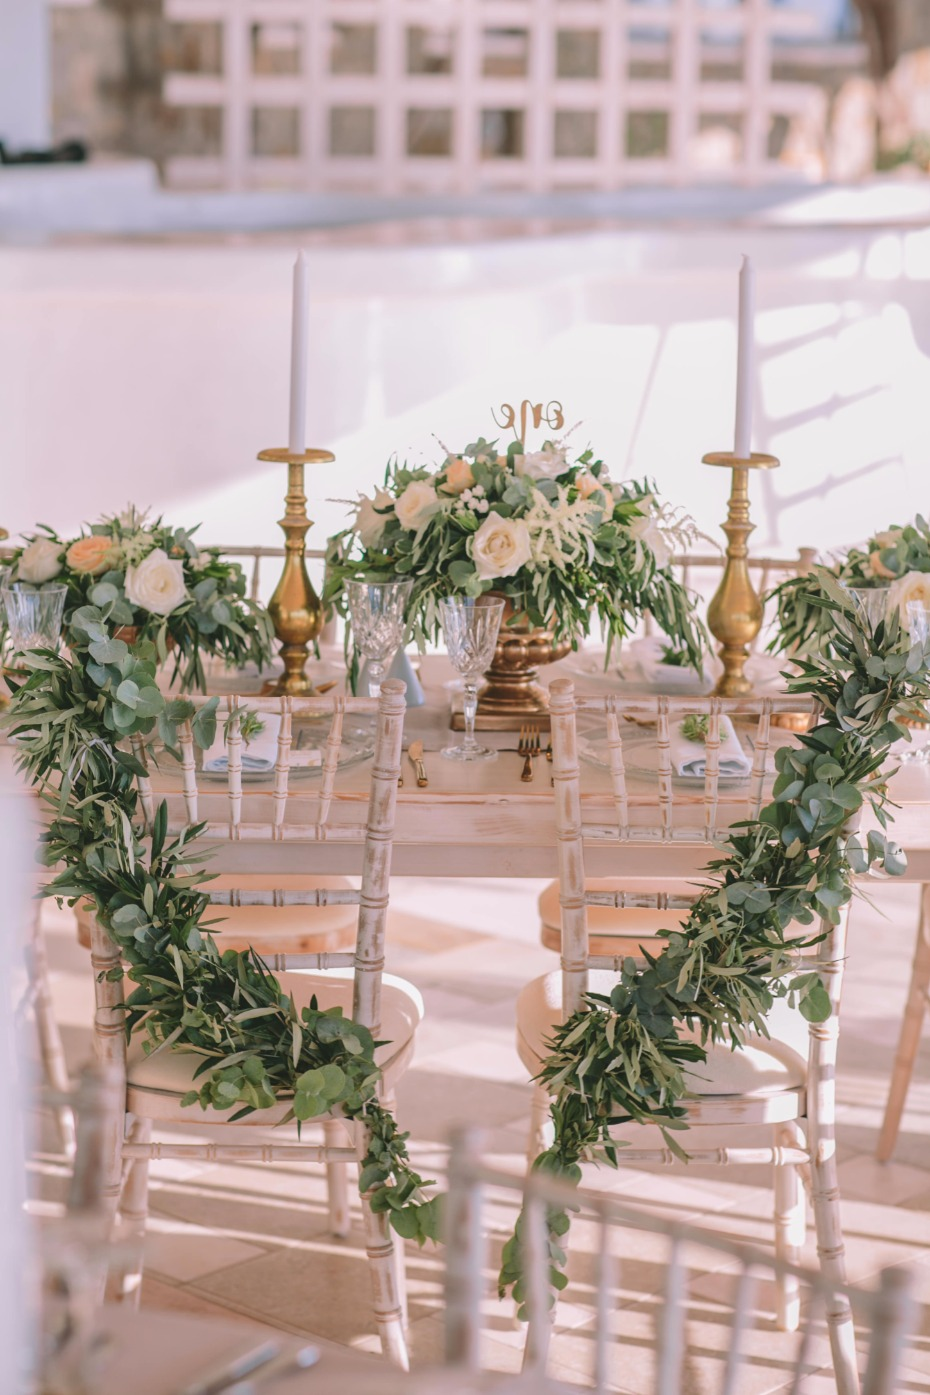 sweetheart table seats with greenery garlands